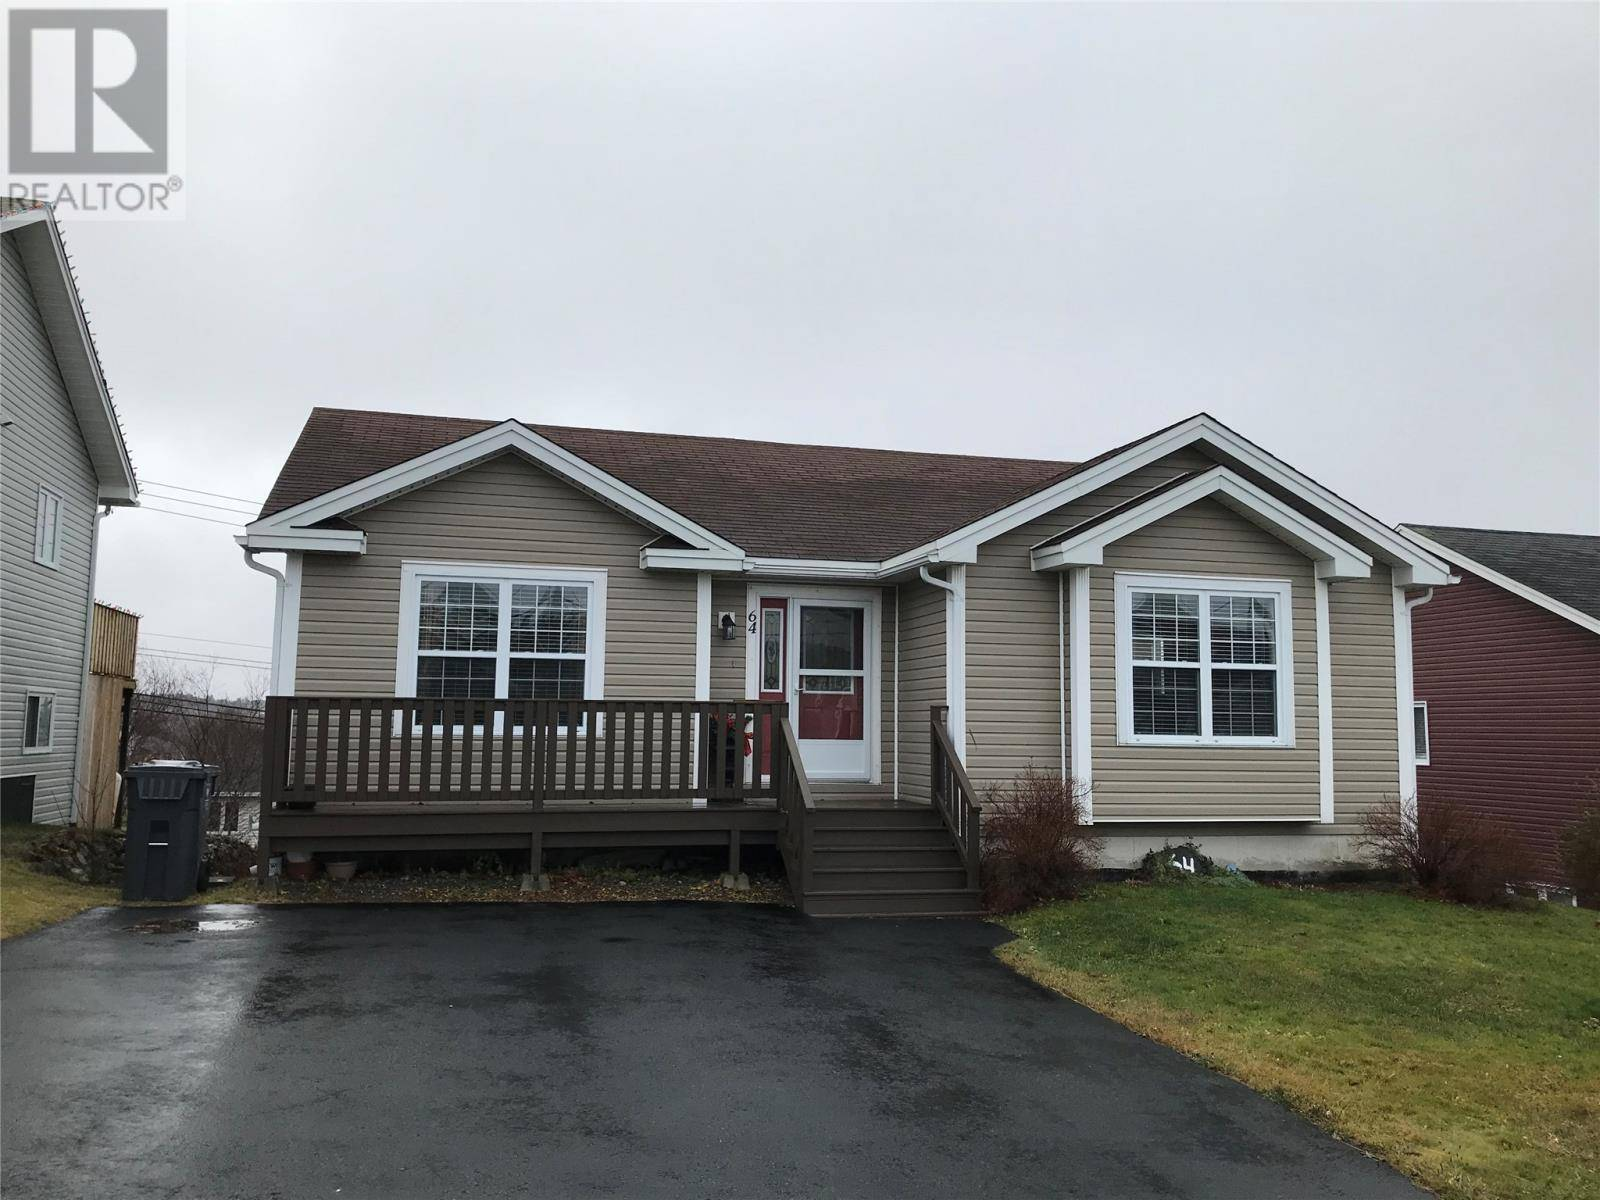 House for sale at 64 Dawson's Run Conception Bay South Newfoundland - MLS: 1207701